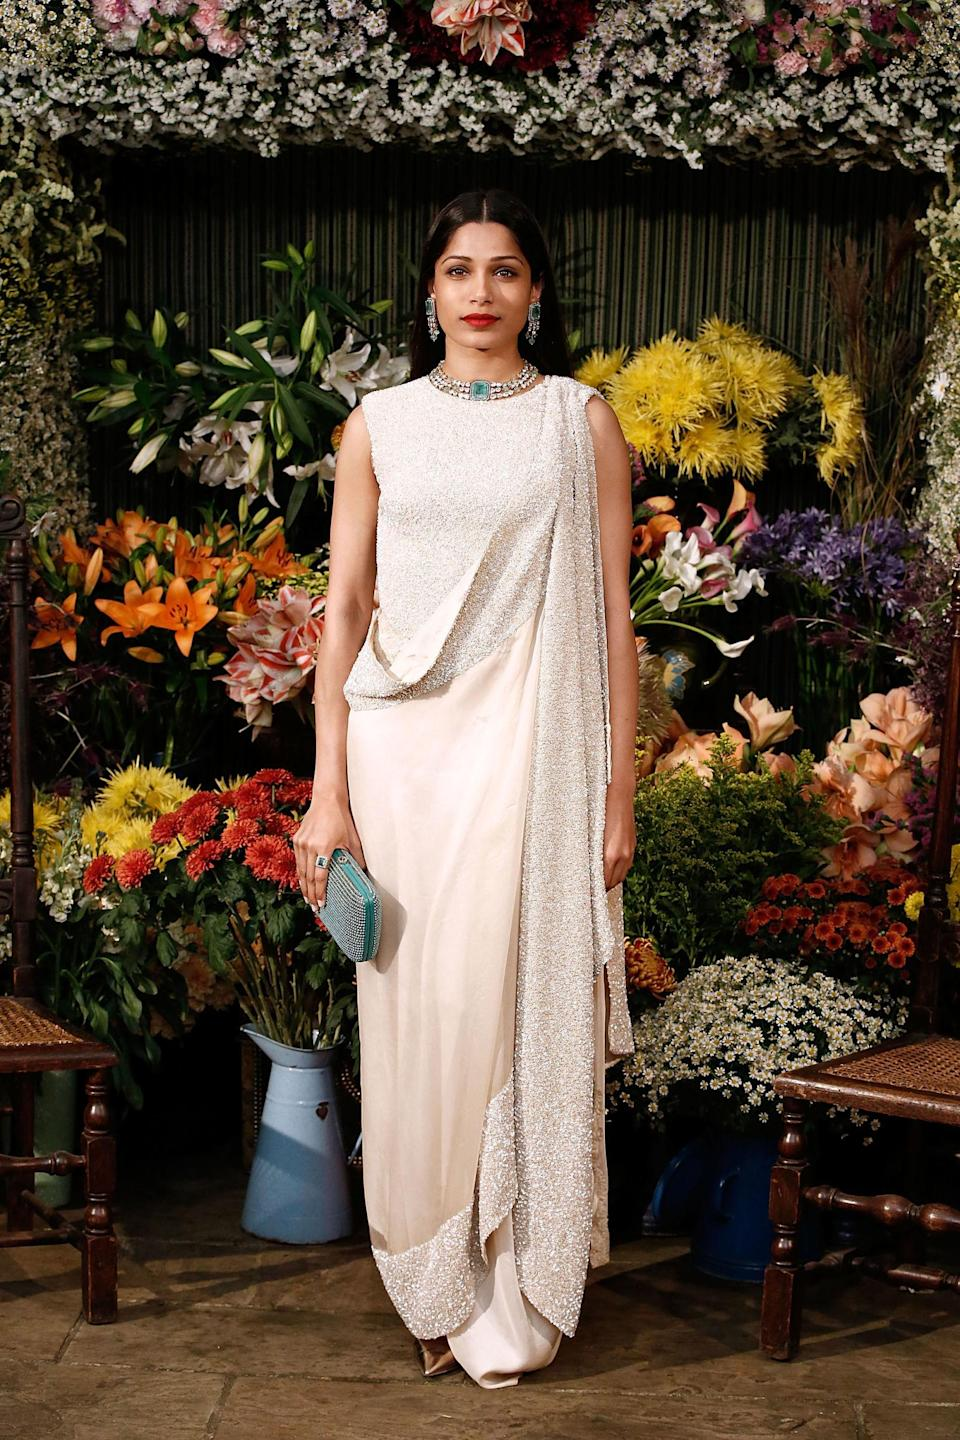 """<p>2008's Oscar-winning<em> Slumdog Millionaire </em>was an over-rated film in all but one respect: it launched the career of Freida Pinto. A darling of fashion magazines ever since, she is also considered in her home country as """"<a href=""""https://www.telegraphindia.com/1111106/jsp/7days/story_14713691.jsp"""" rel=""""nofollow noopener"""" target=""""_blank"""" data-ylk=""""slk:arguably the biggest global star from India"""" class=""""link rapid-noclick-resp"""">arguably the biggest global star from India</a>.""""</p>"""